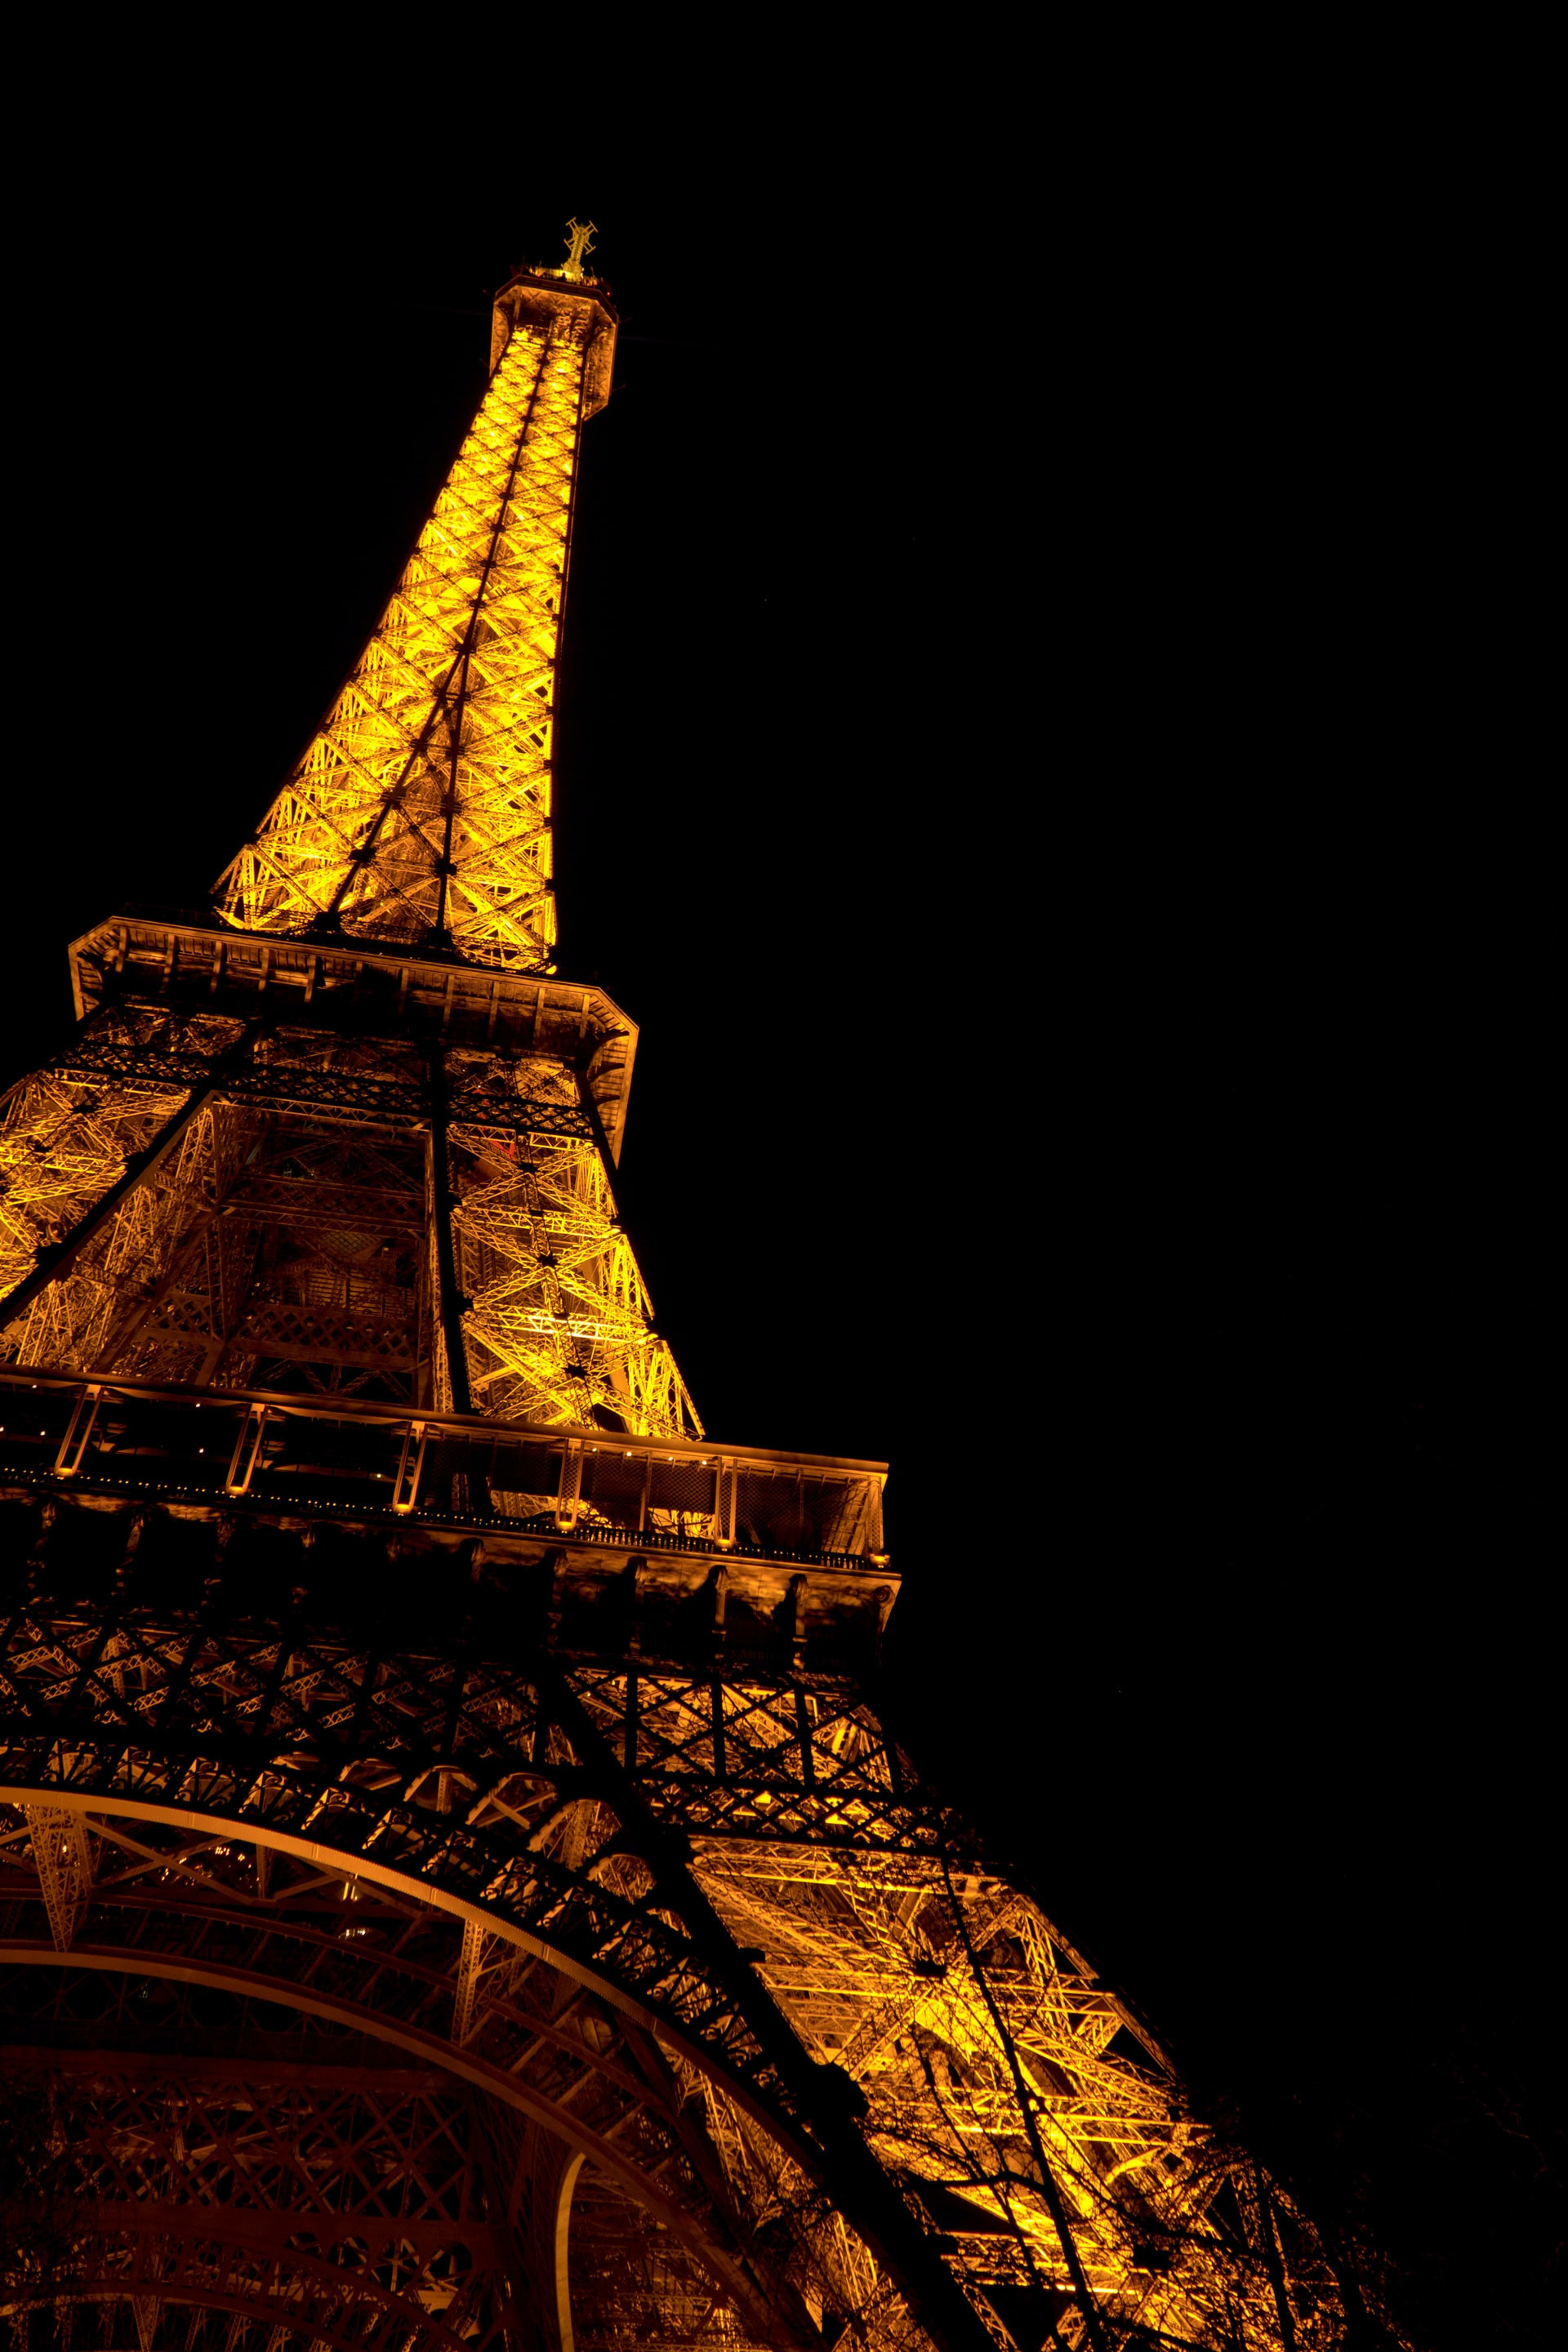 Eiffel Tower, Paris at nighttime